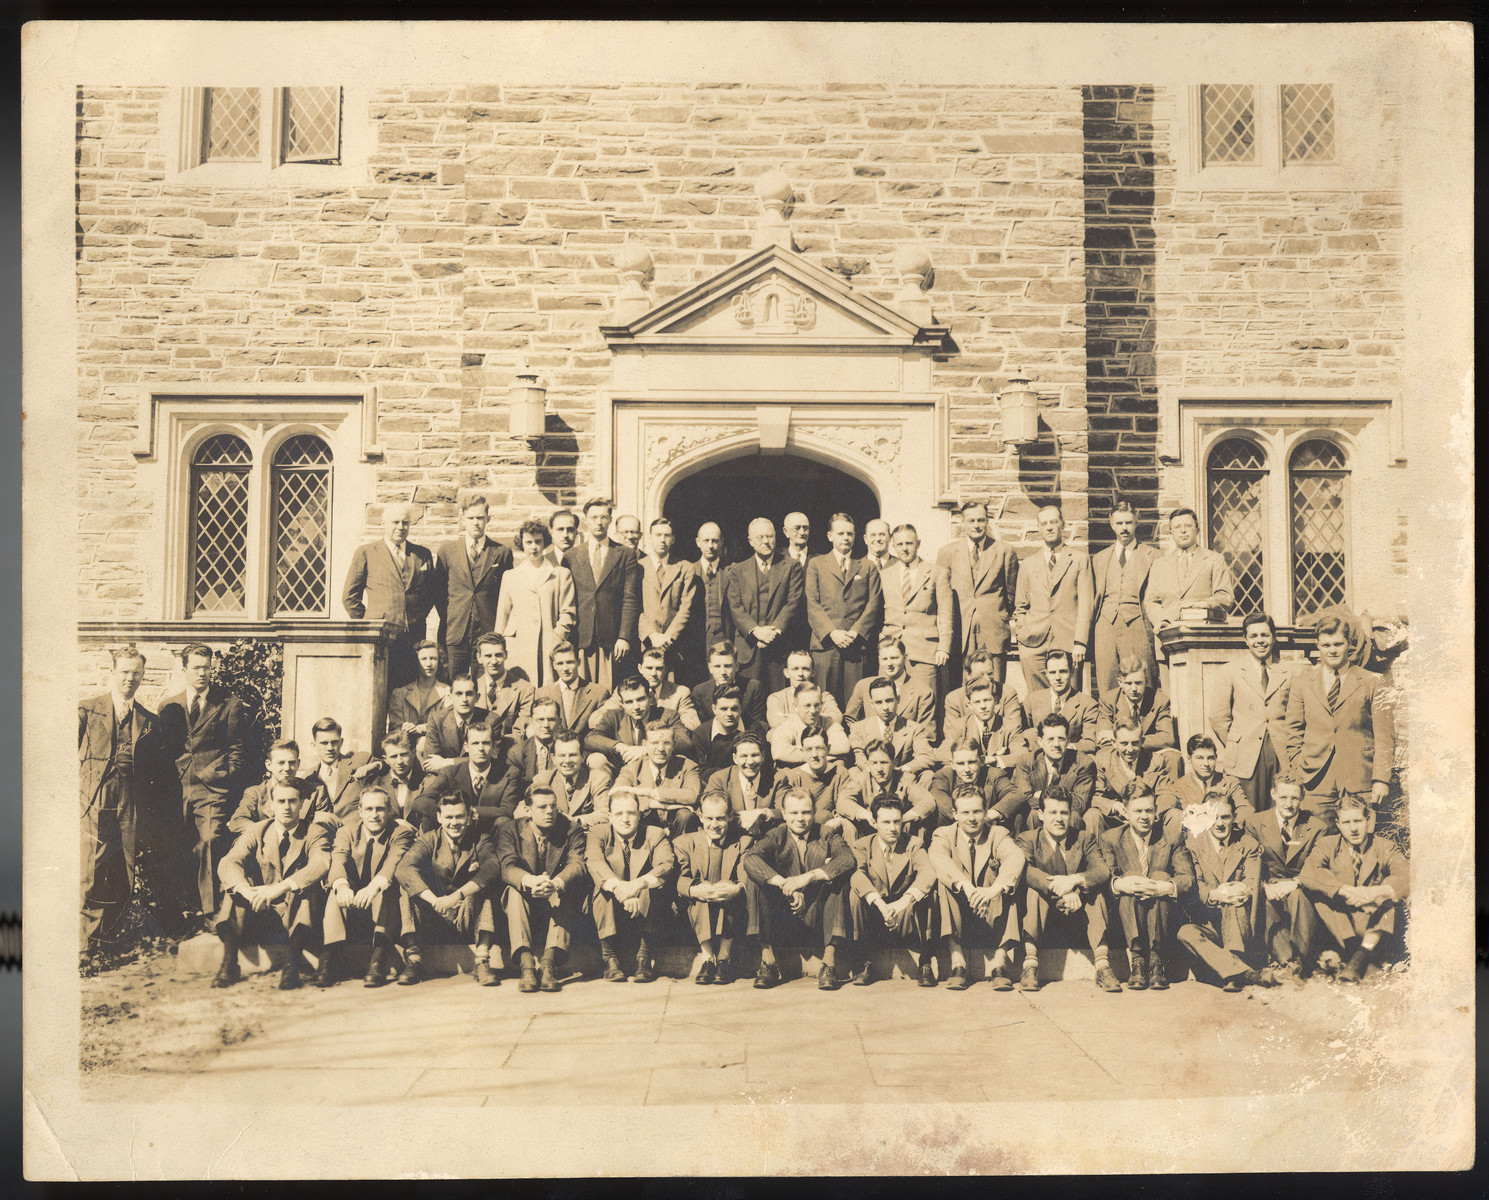 Group portrait of students and faculty at the Duke University School of Law.  Among those pictured are Raphael Lemkin (fifth row, sixth from the left wearing glasses) and the donor, Jack L. Bloom (third row, sixth from the left wearing a dotted tie).  Bloom was a first-year law student at the time; Lemkin was on the faculty.